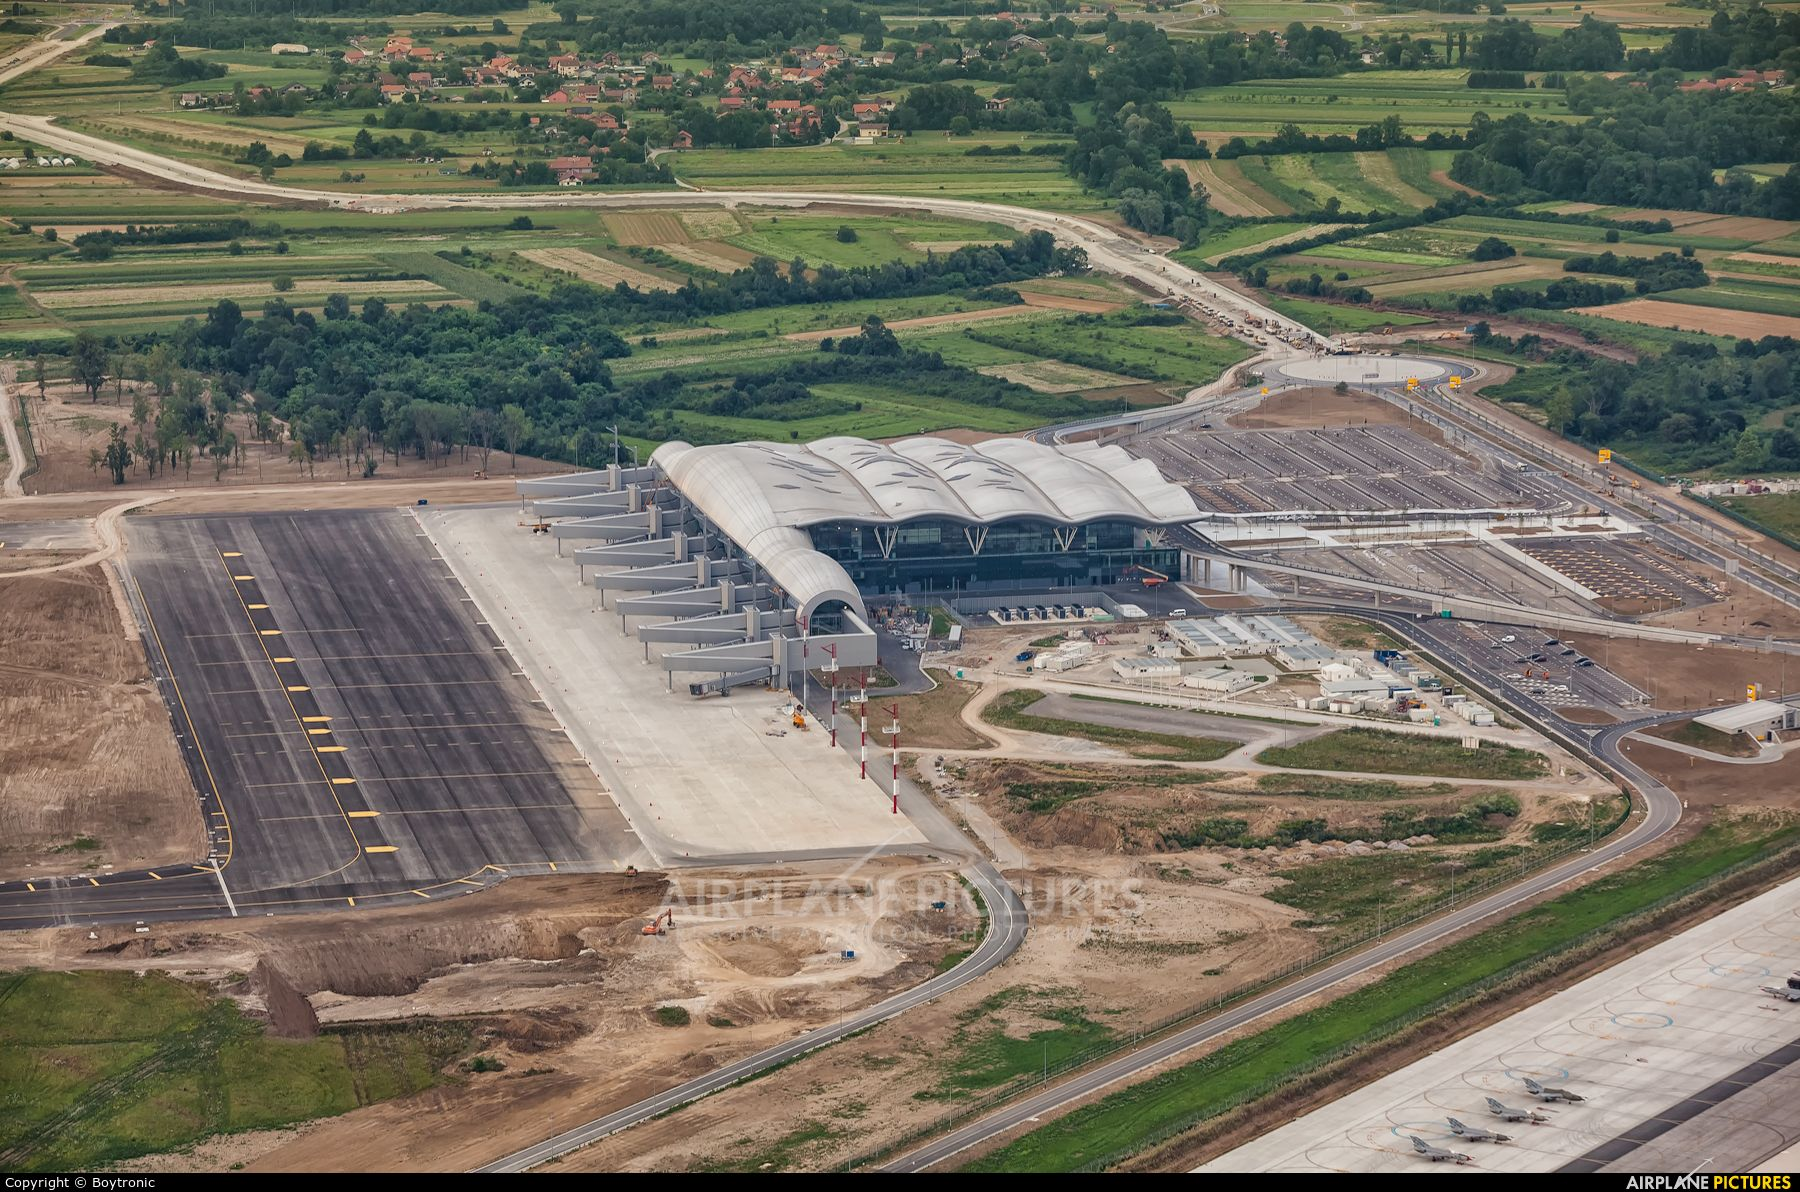 Airport Overview Airport Overview Overall View Photo By Boytronic Airport View Photos Photo